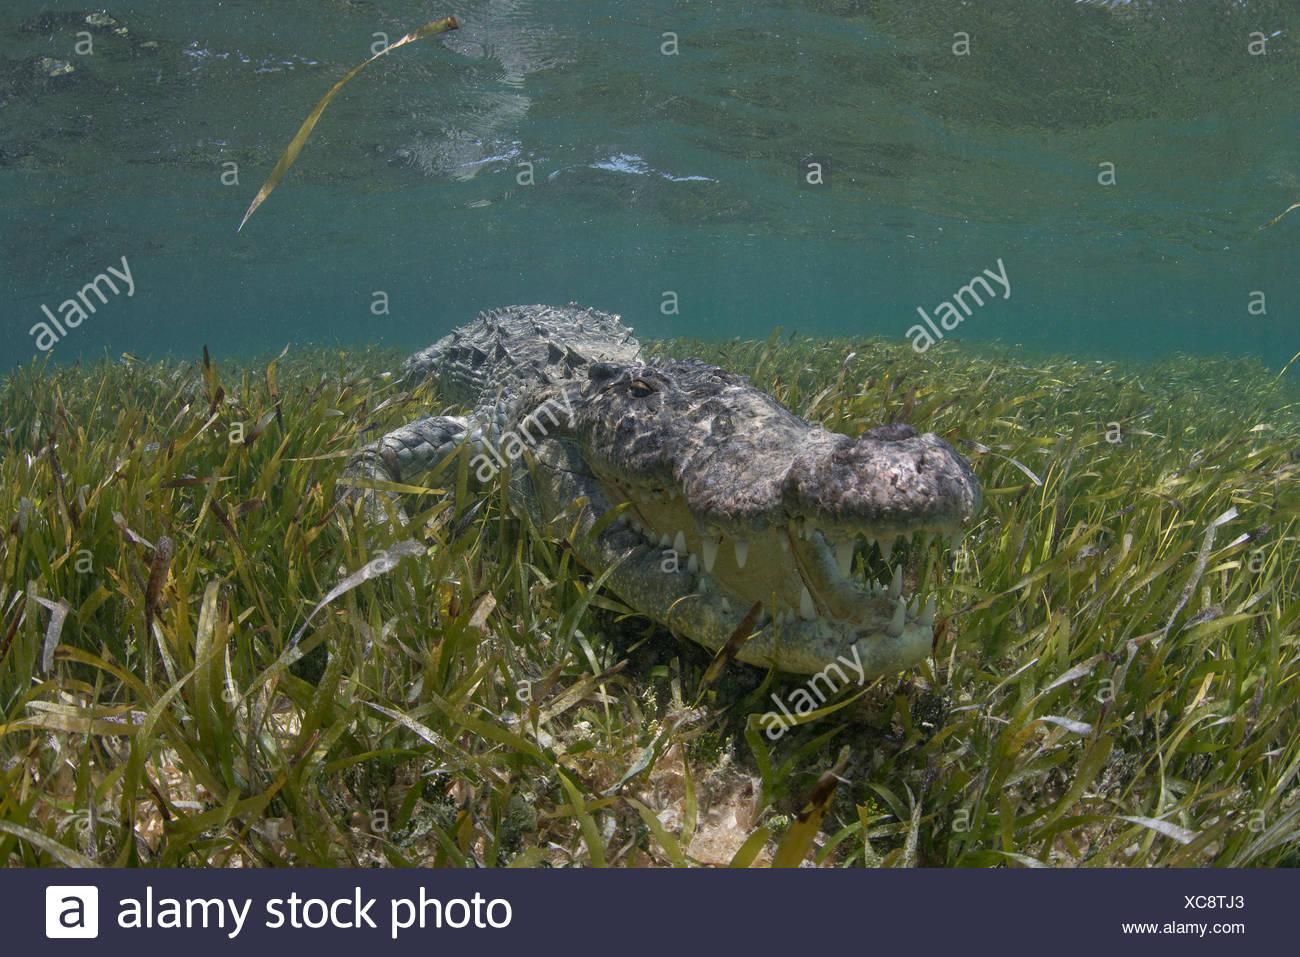 Underwater view of American crocodile in shallow waters of Chinchorro Atoll Biosphere Reserve, Quintana Roo, Mexico - Stock Image